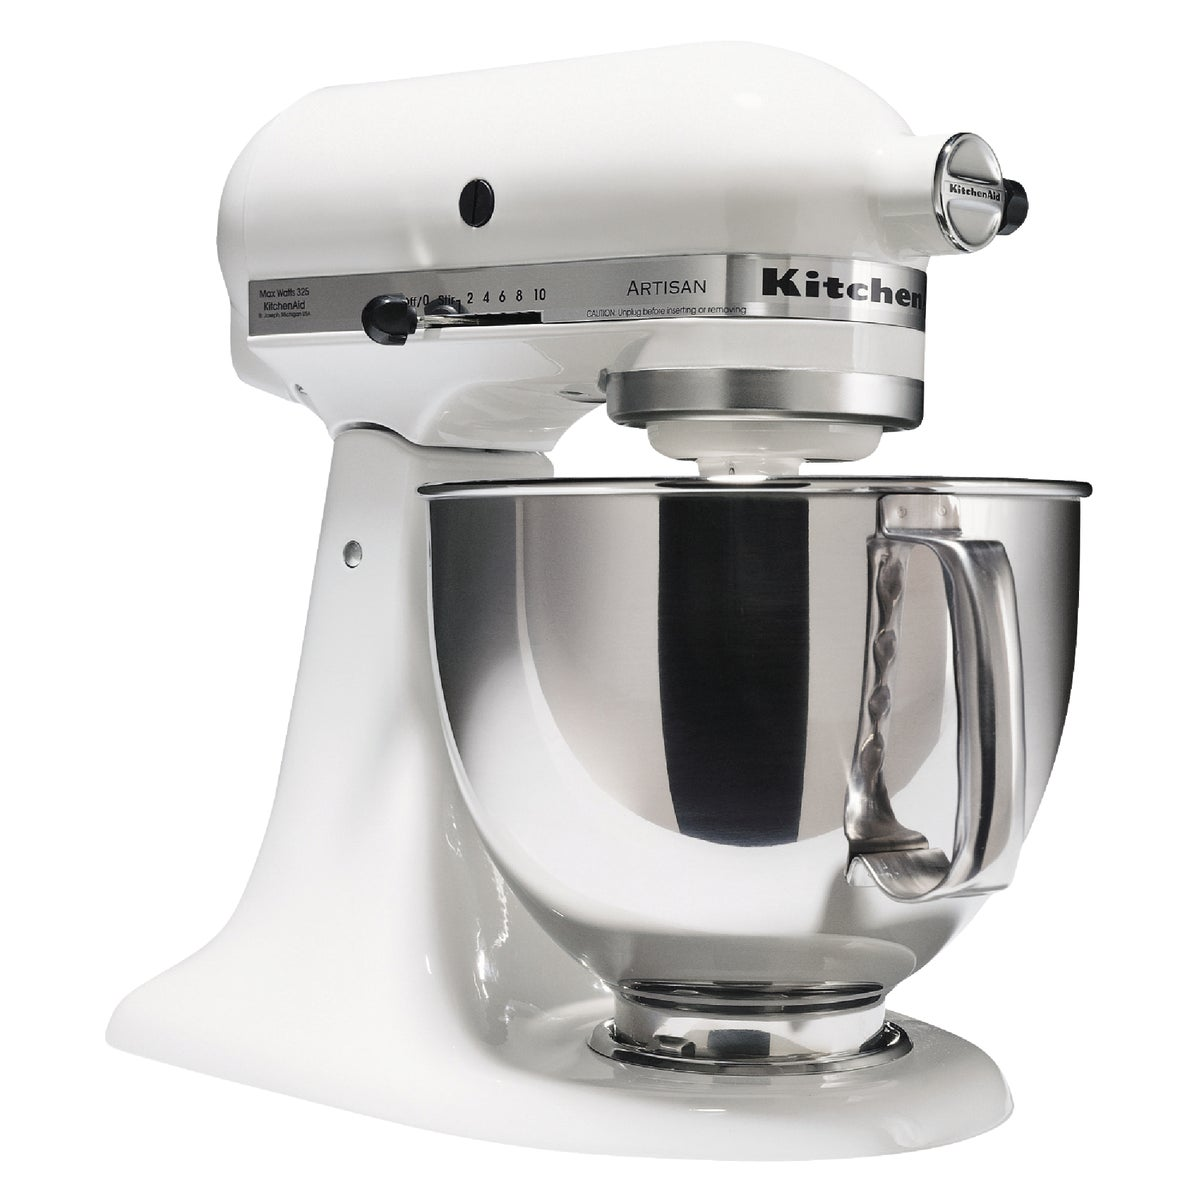 WHT ARTISAN STAND MIXER - KSM150PSWH by Kitchenaid Inc